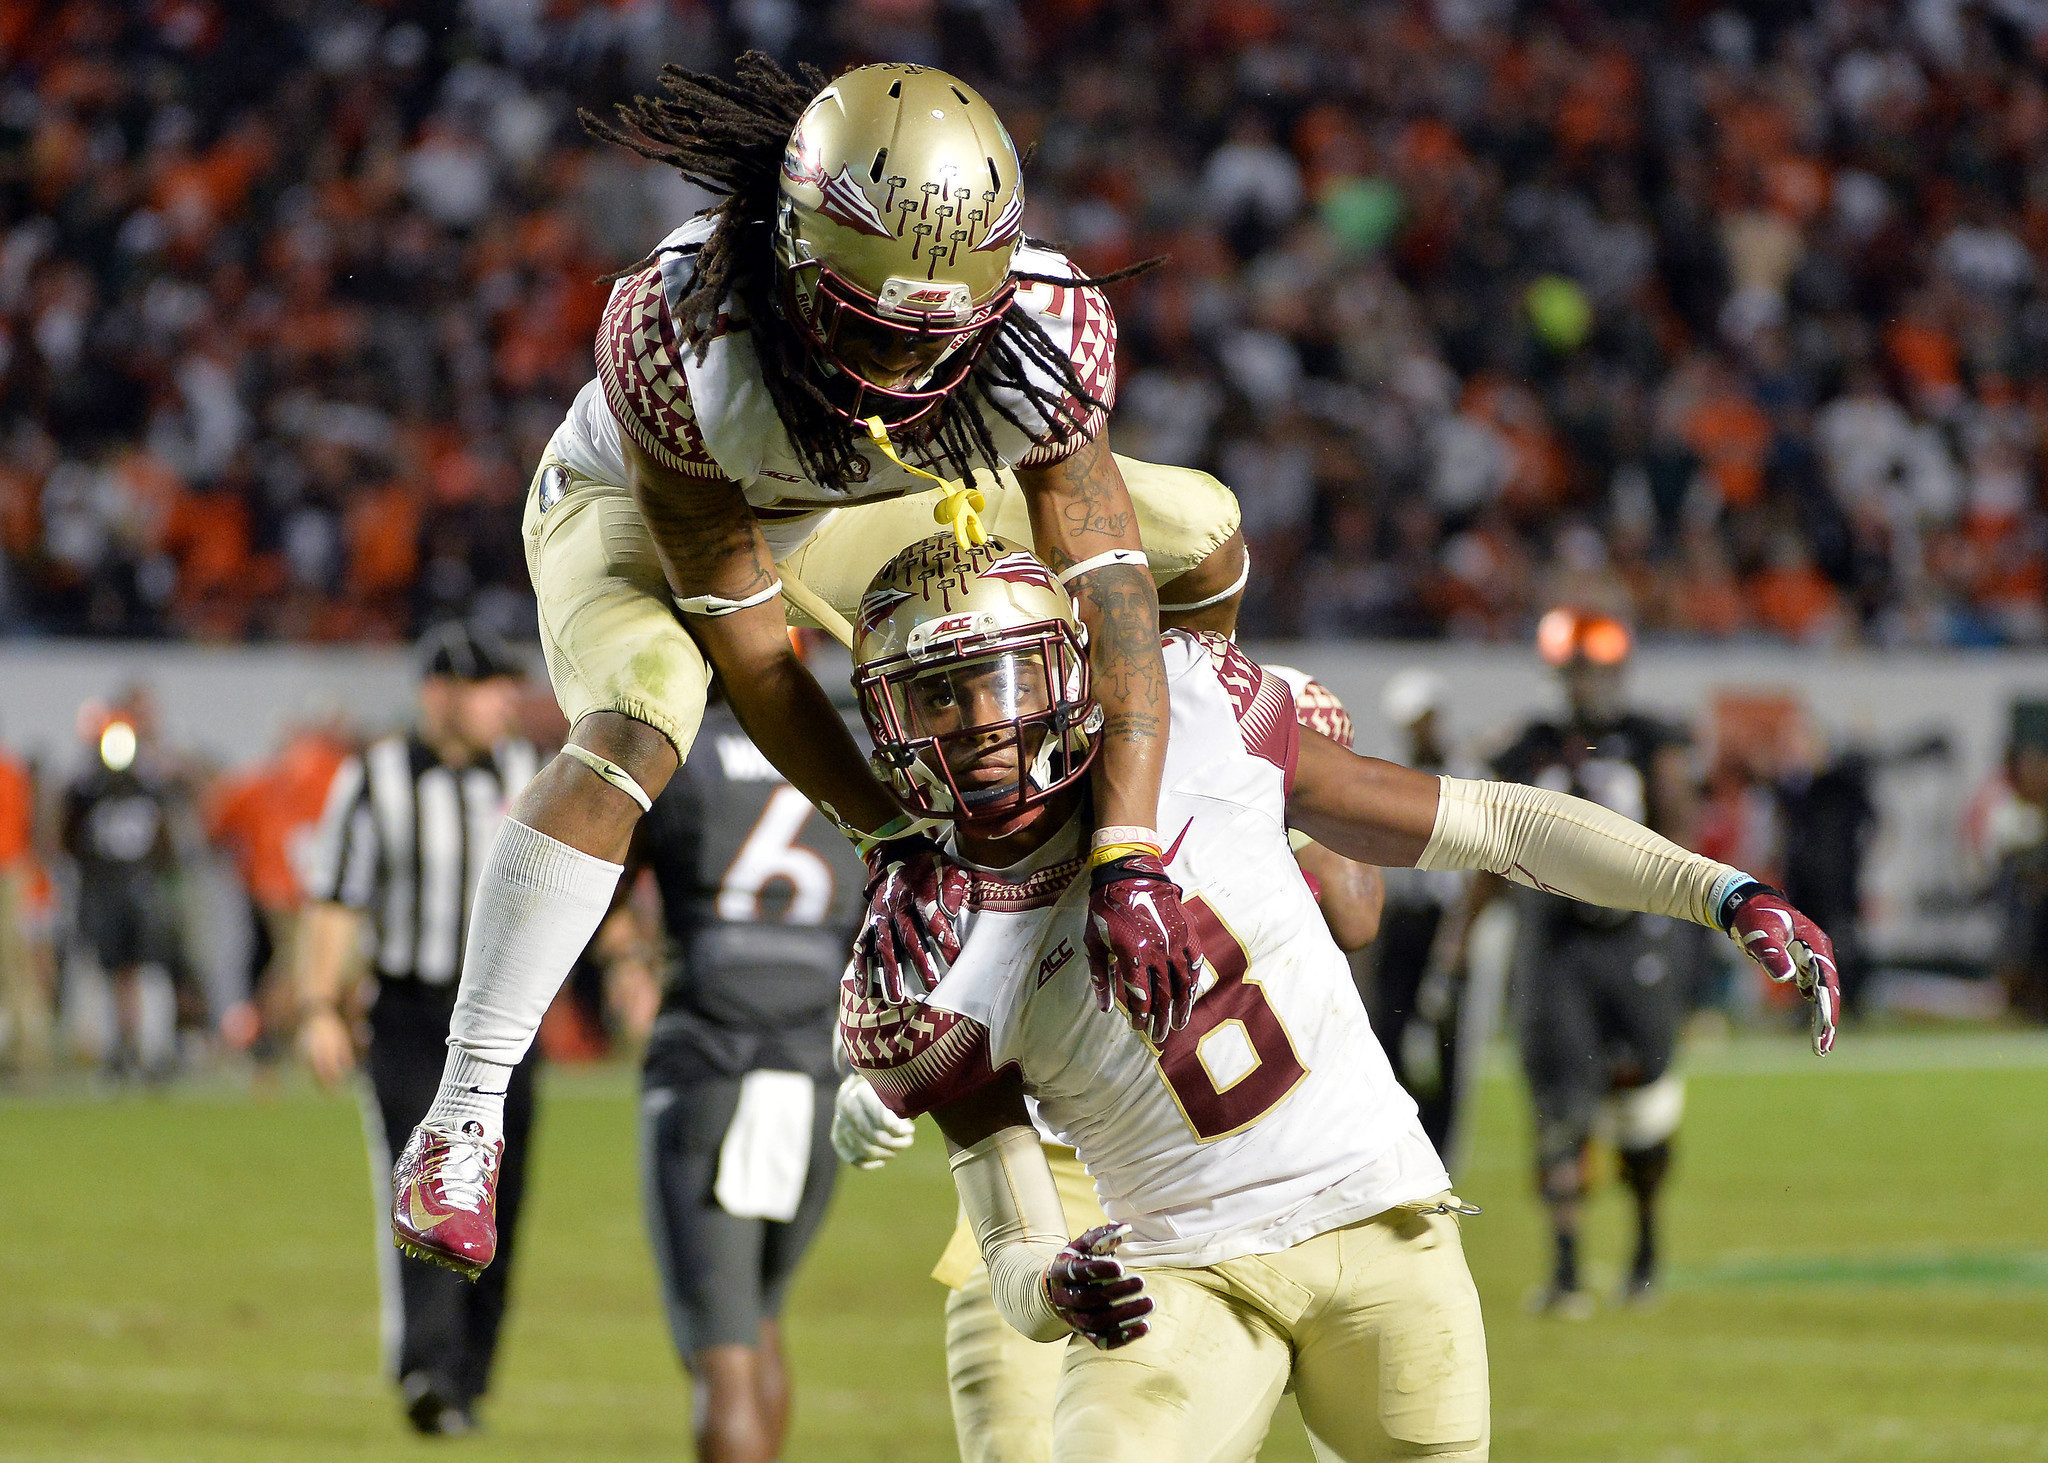 FSU DB Jalen Ramsey sparks defense takes on role of villain